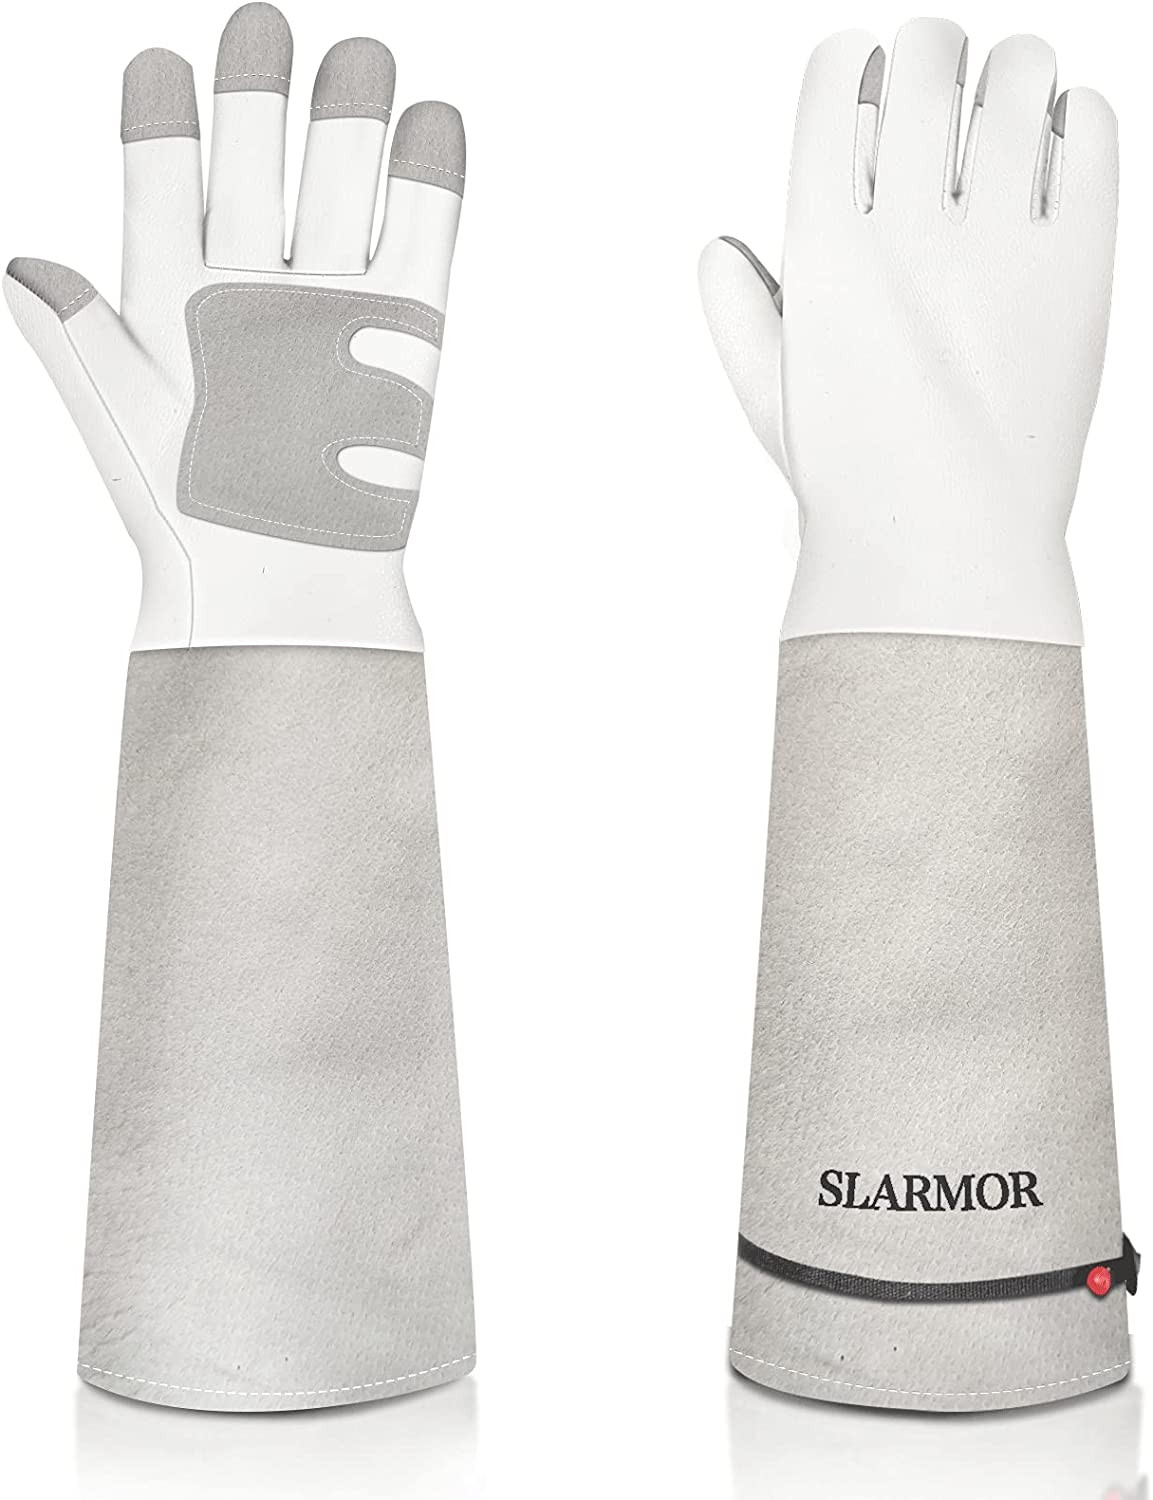 Rose Pruning Gardening Seattle Mall Gloves Washington Mall Gauntlet- P Breathable Thorn Proof